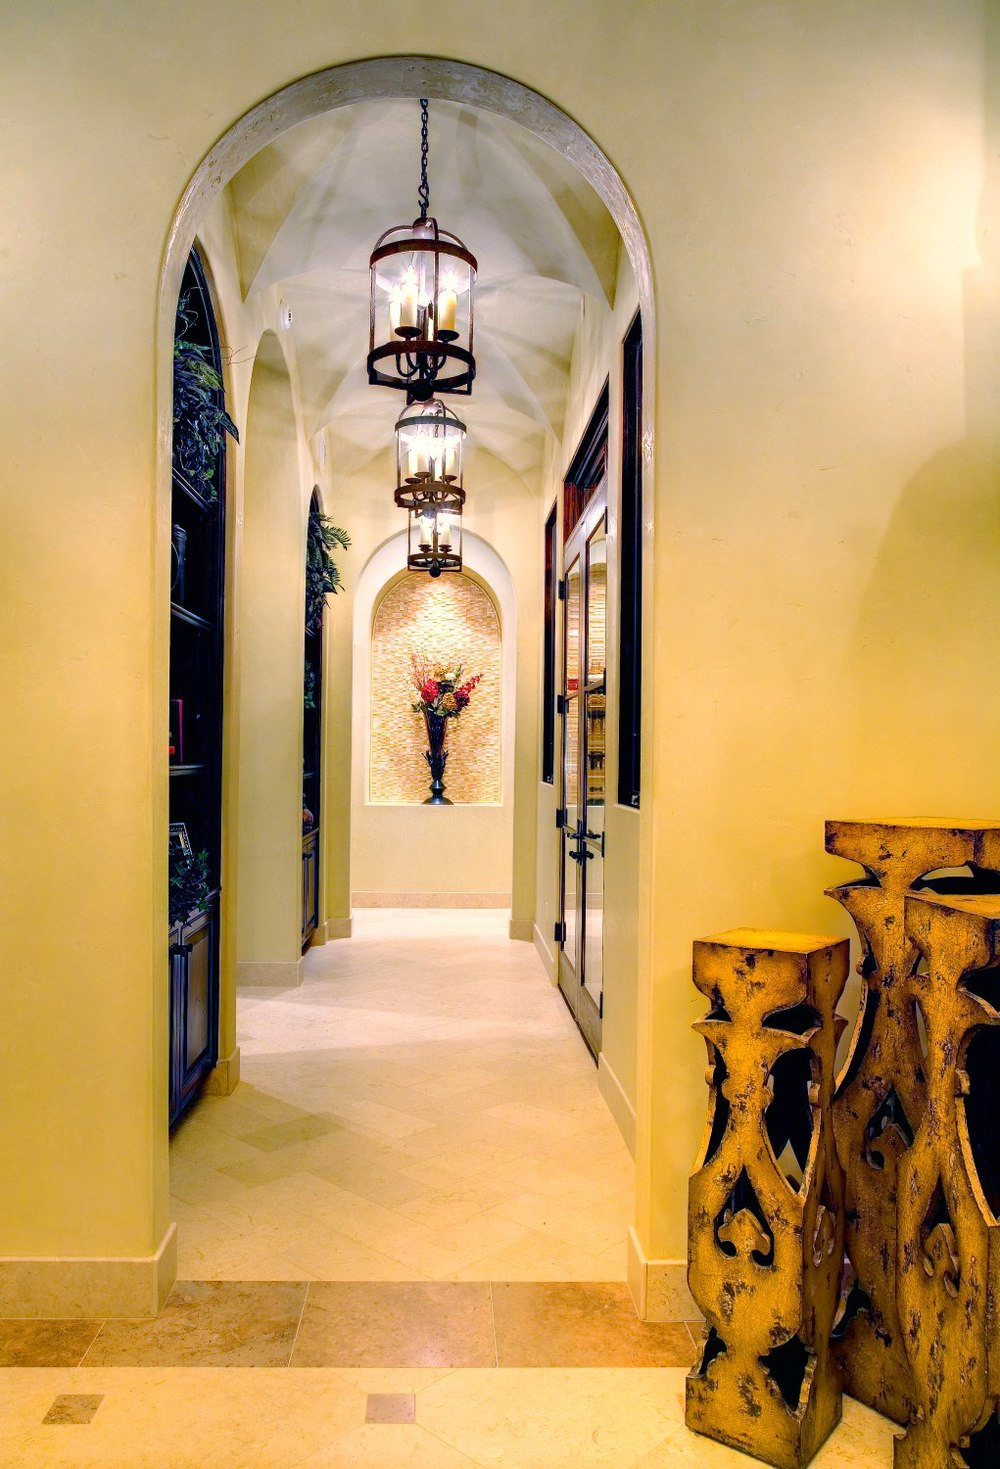 Architecture Home Courtyard retreat hallway